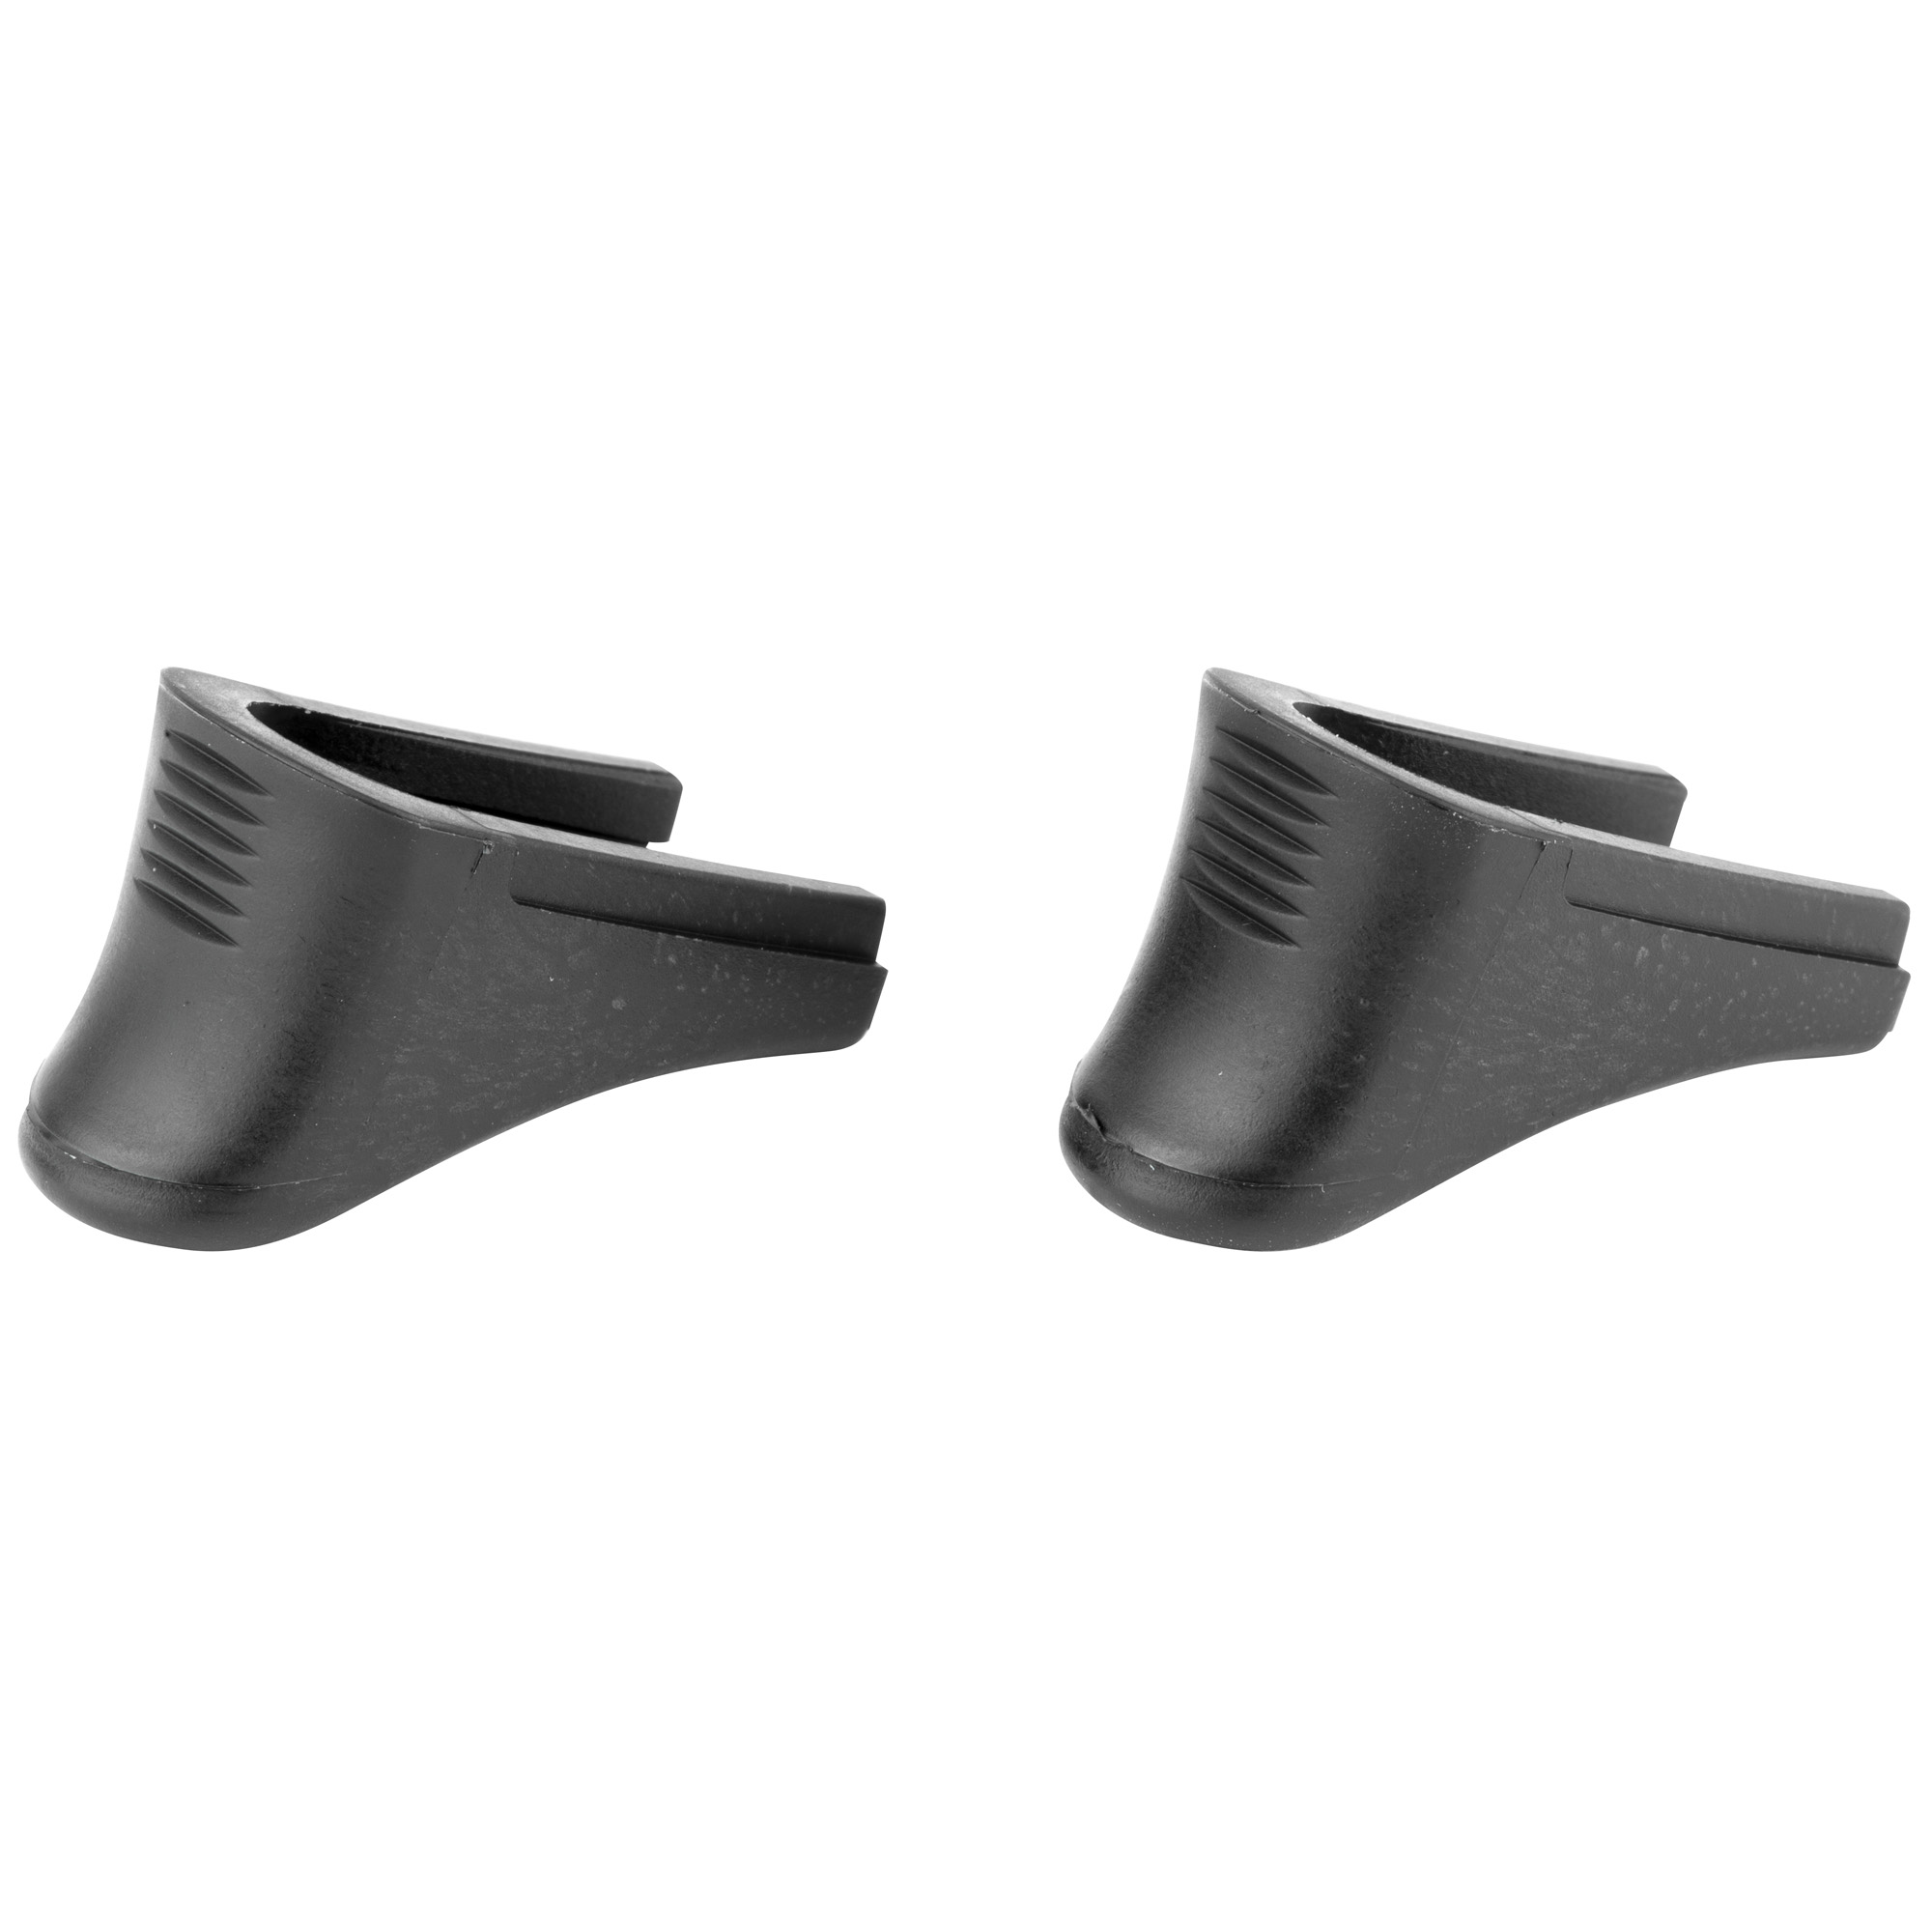 """These extensions replace the magazine base plate and retain all other factory components. They do not alter the capacity of the magazine. These units provide better comfort and control by adding approximately 1/2"""" of gripping surface. These extensions will only fit the LCP and LCPII in .380 cal and will not work on the 9mm Ruger models."""